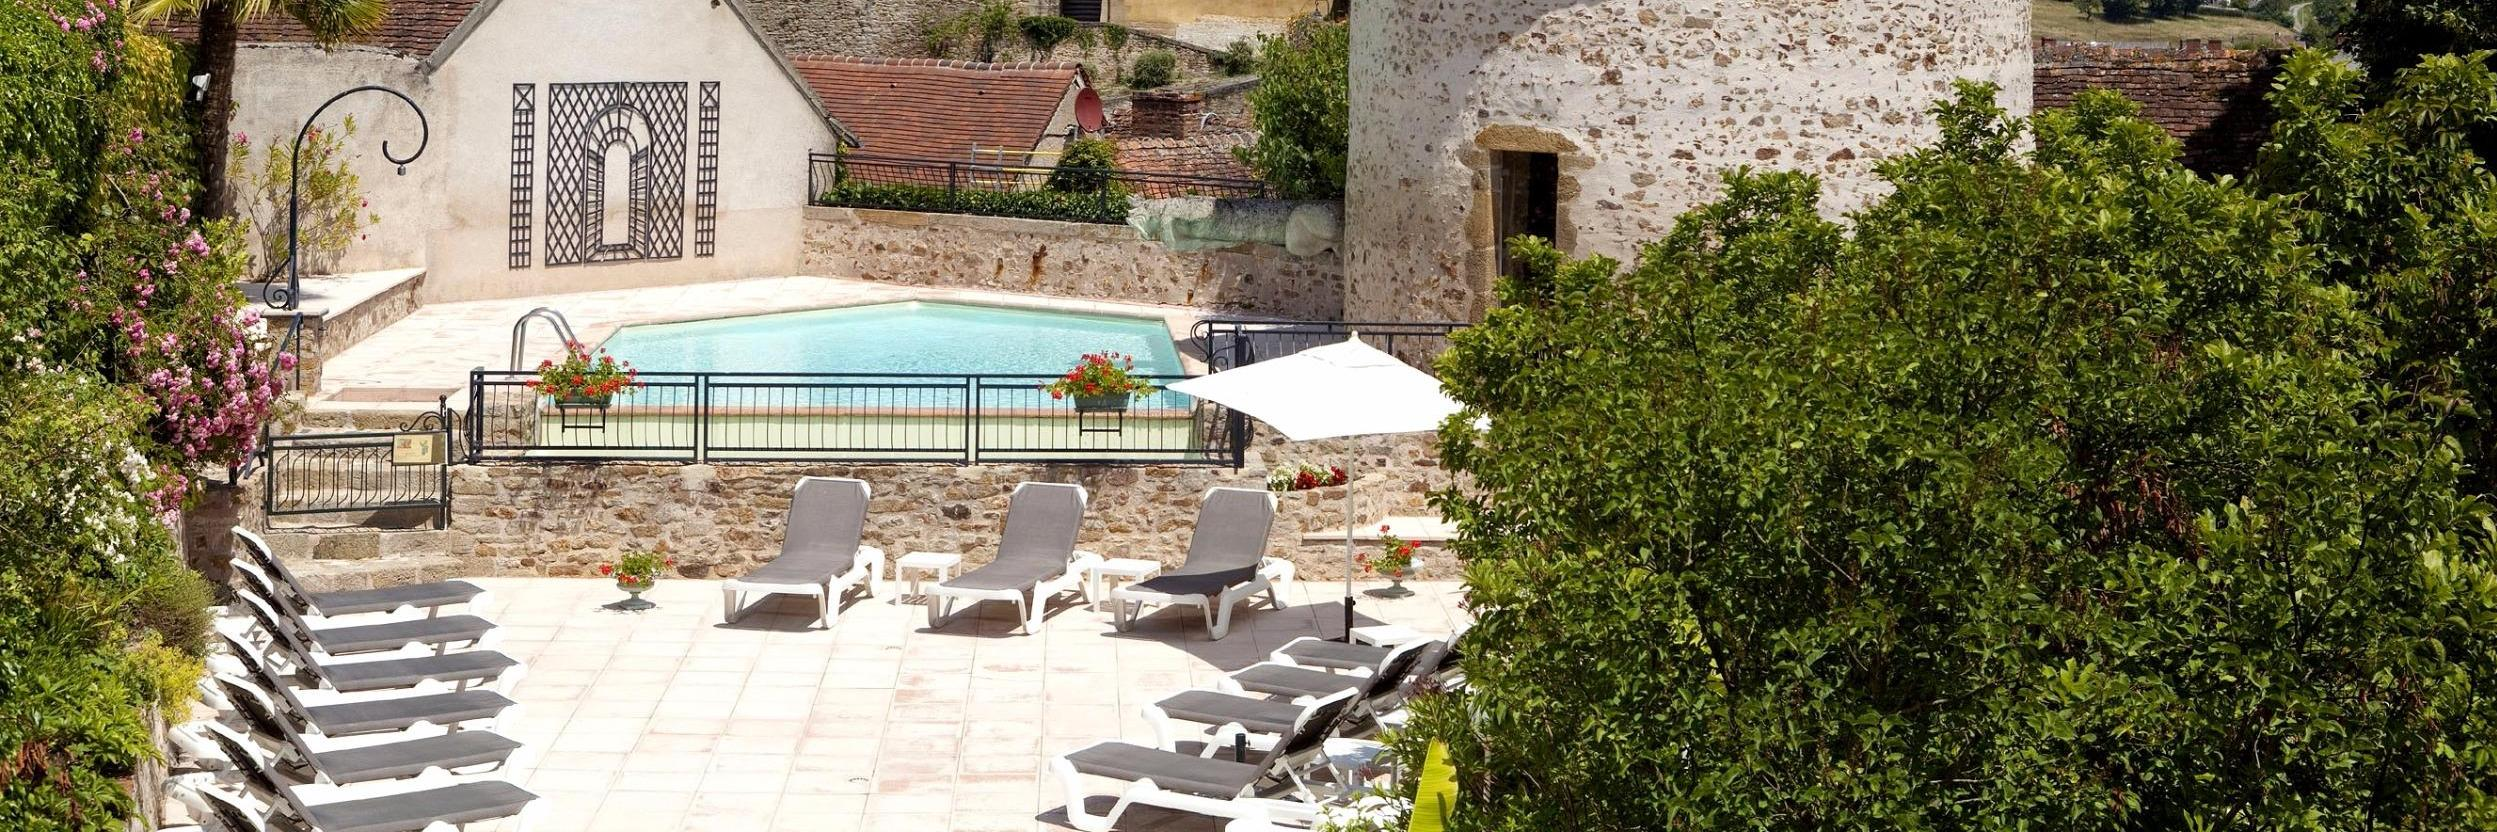 Logis Grand Hôtel Montespan-Talleyrand -